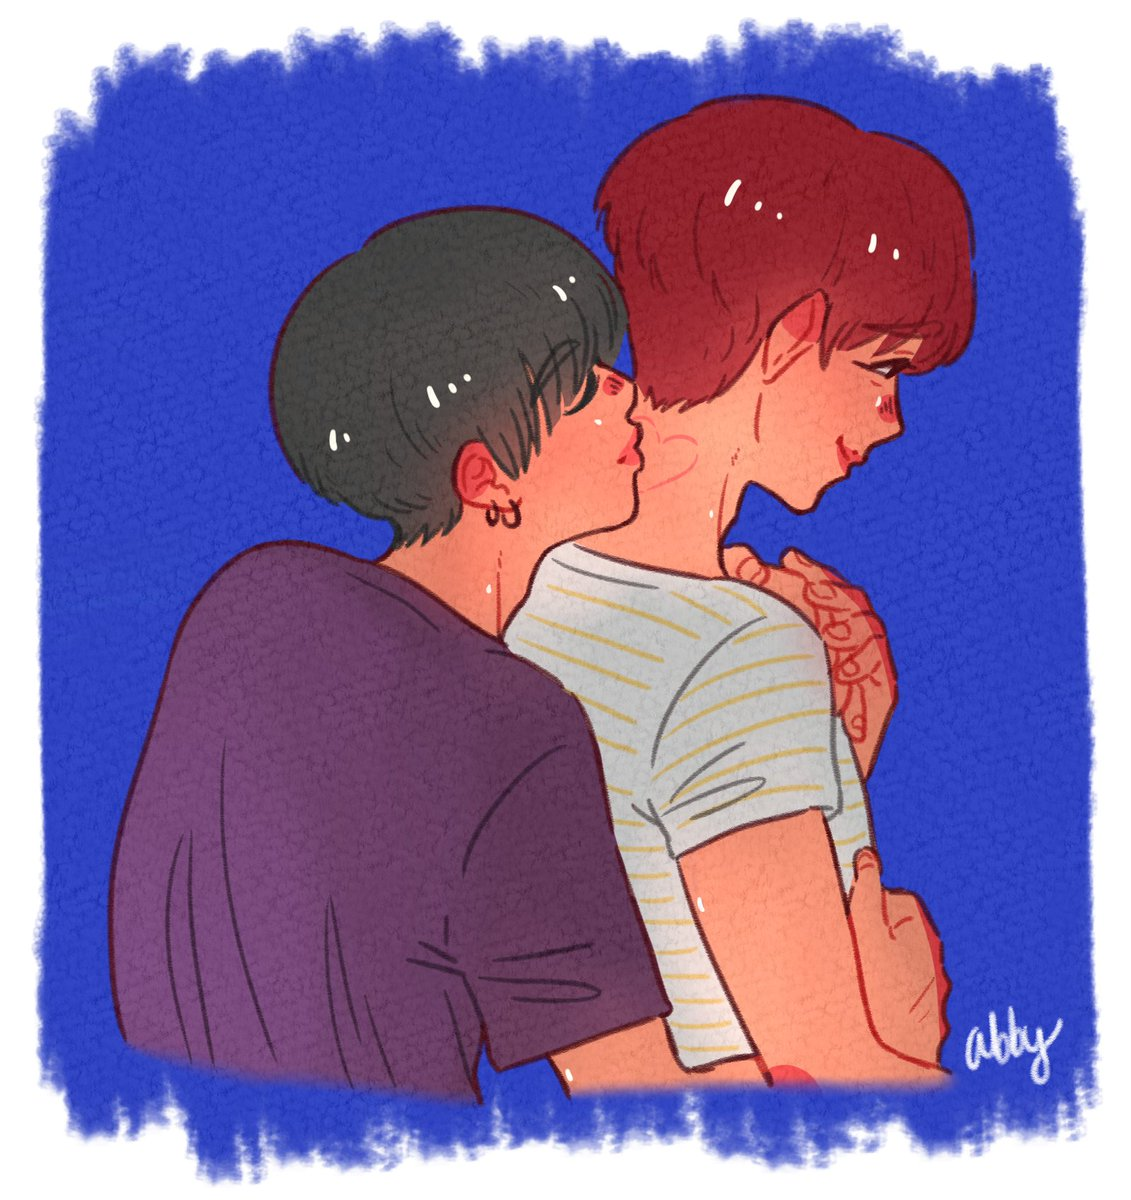 a quick one of them before i sleep  #hopekook #btsfanart <br>http://pic.twitter.com/YUlY75ykqt